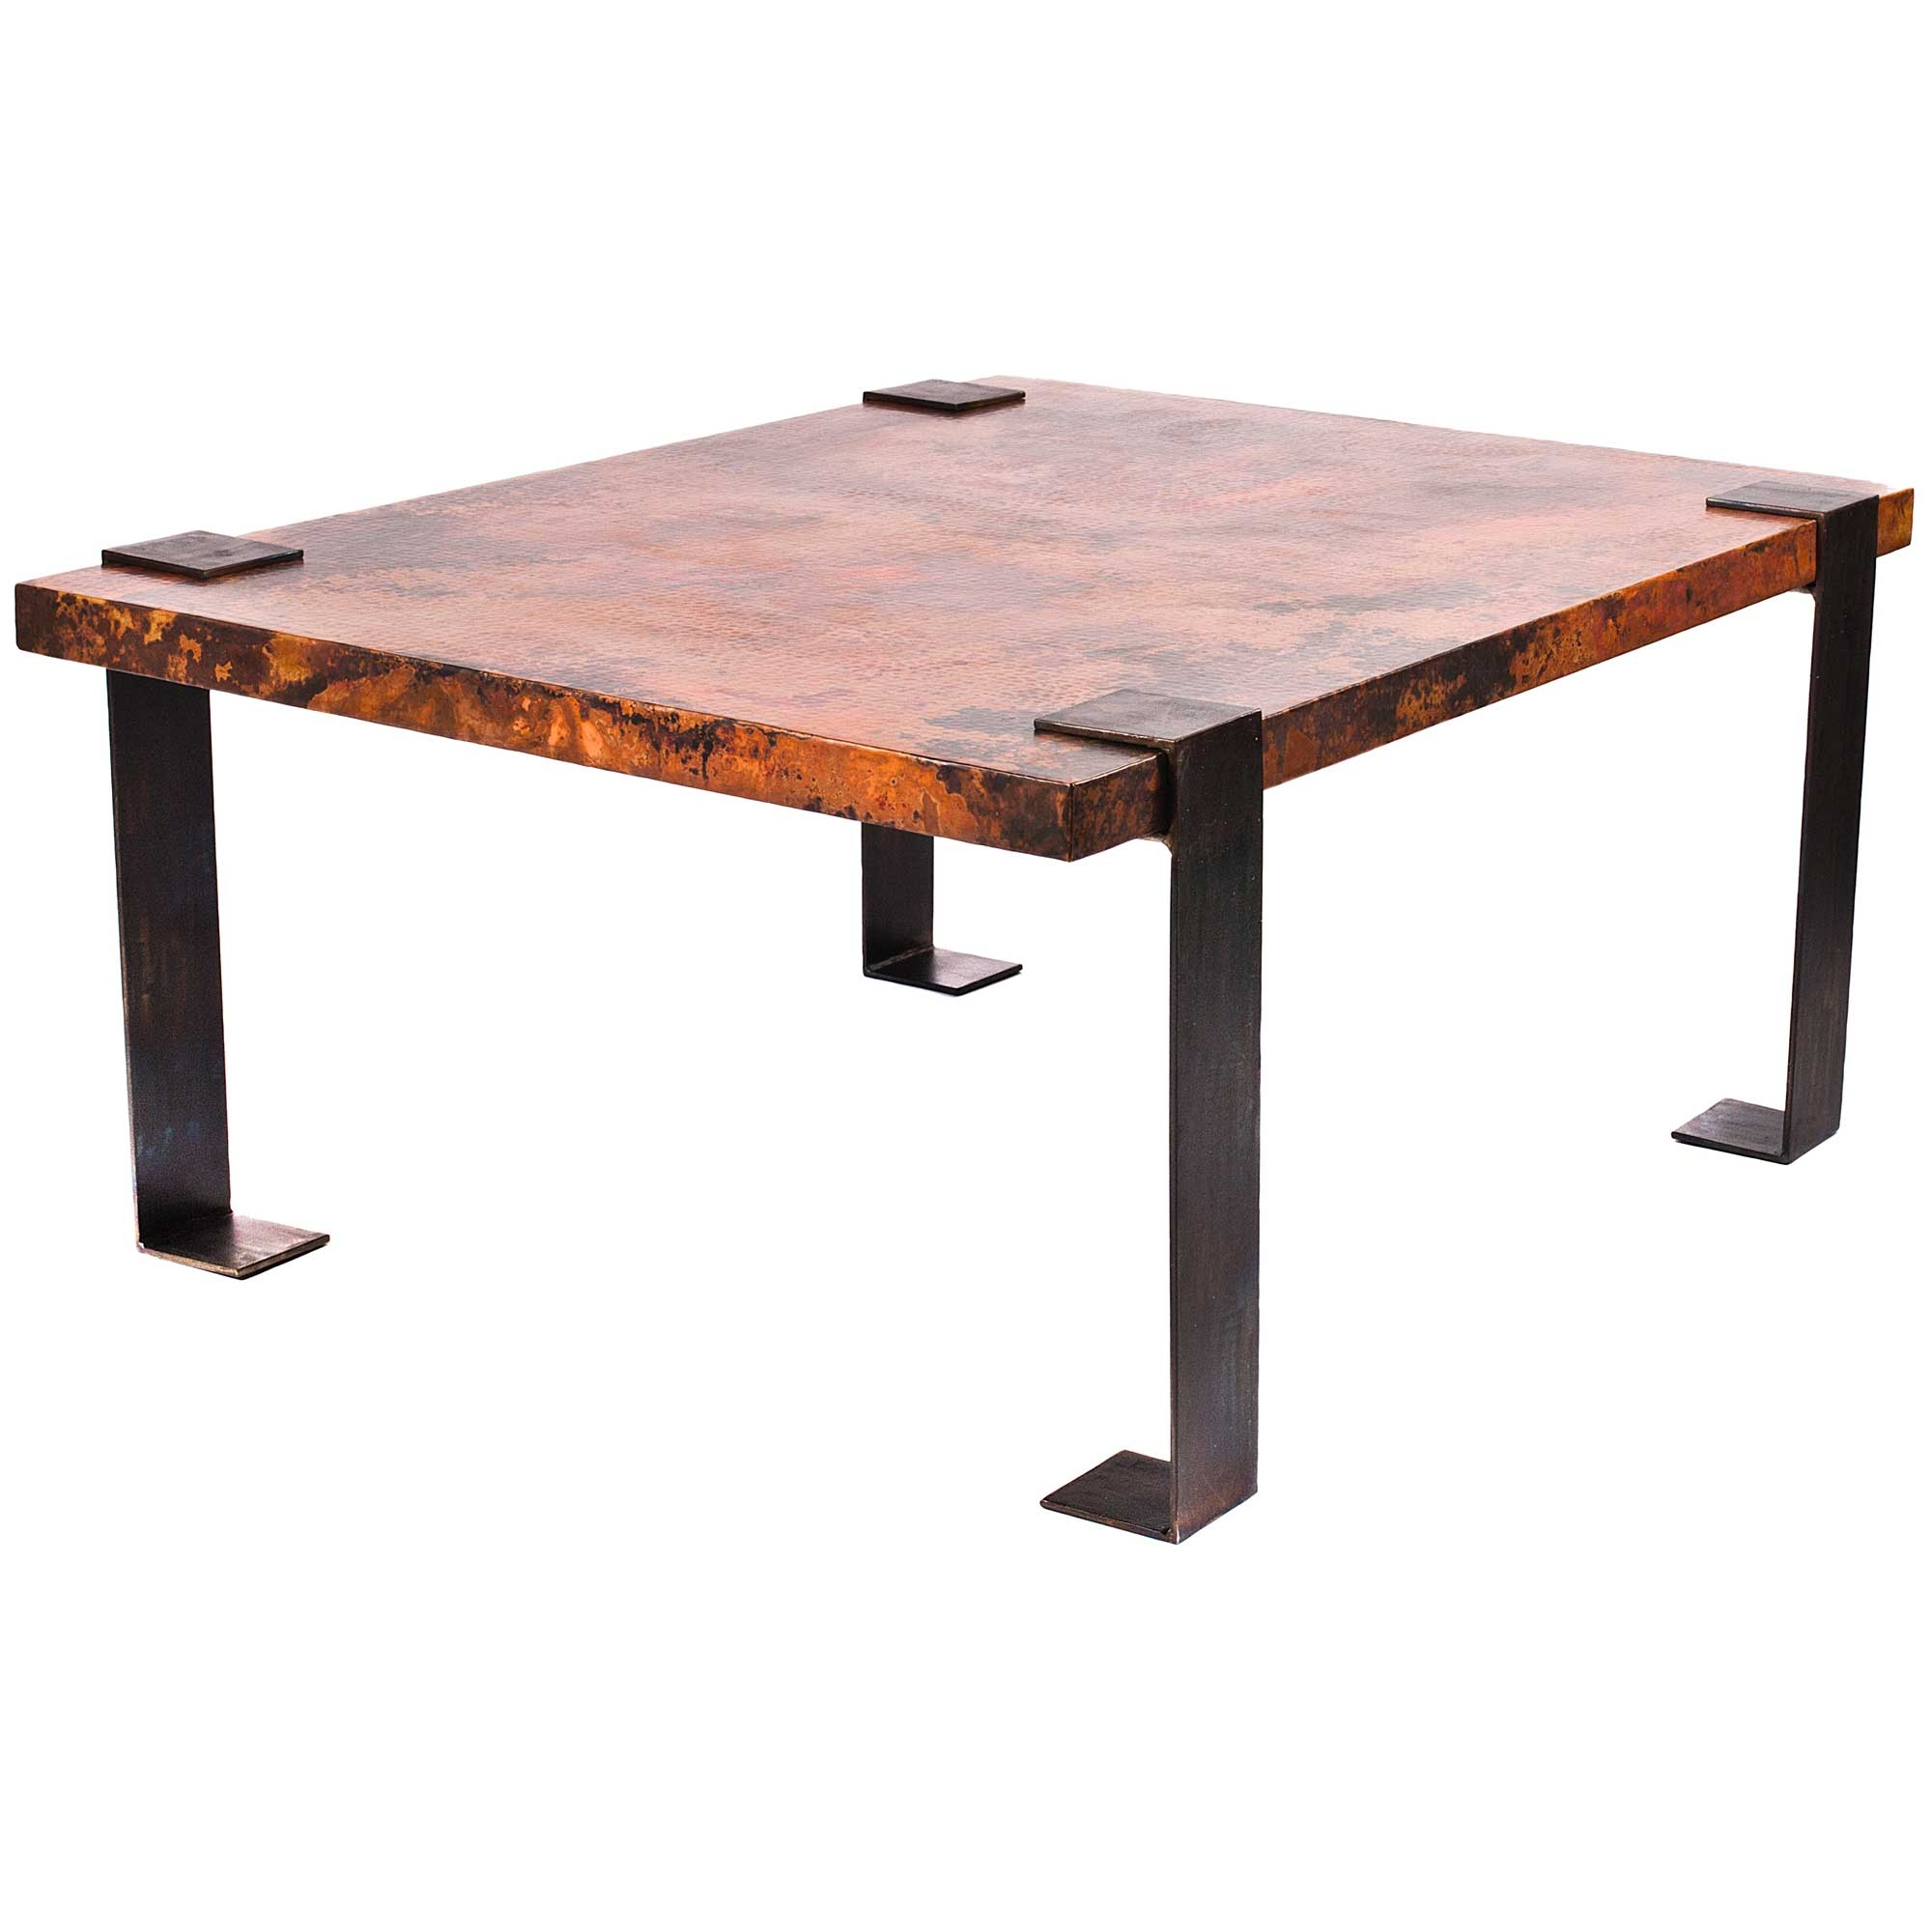 Copper Top Rectangular Coffee Table: Pictured Here Is The Hudson Small Cocktail Table With